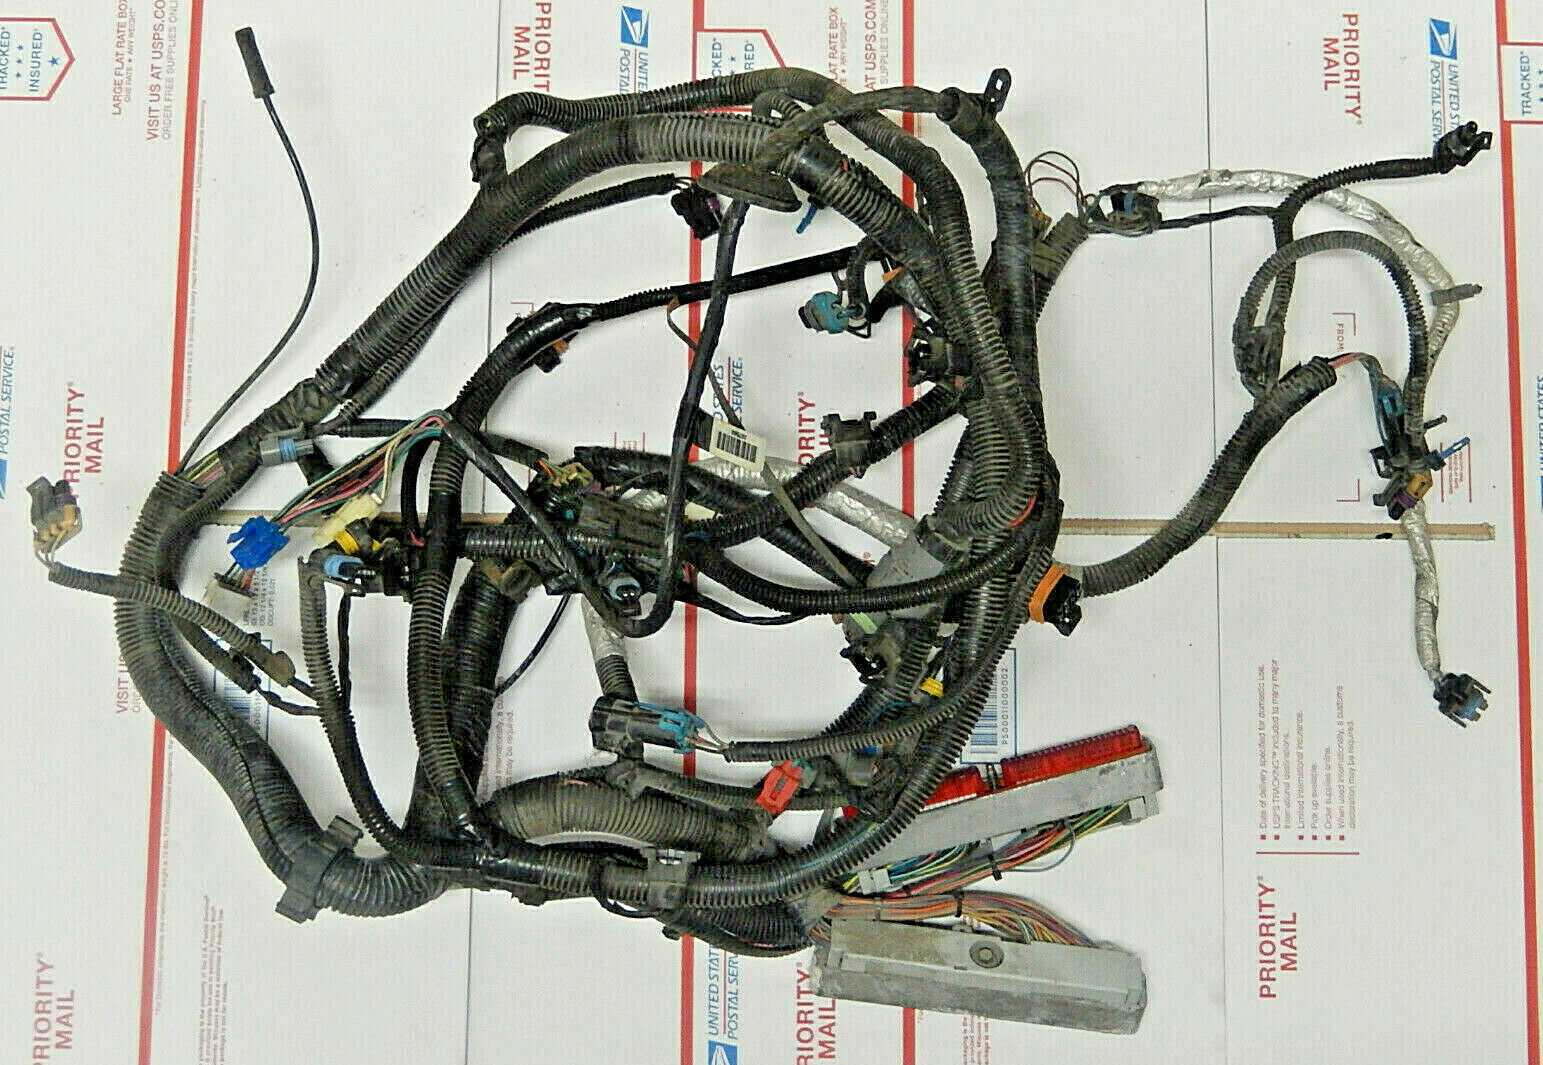 For sale: engine wiring harness for a 1998 Camaro/Trans Am only - LS1TECH -  Camaro and Firebird Forum Discussion | 1998 Camaro Wiring Harness |  | LS1Tech.com